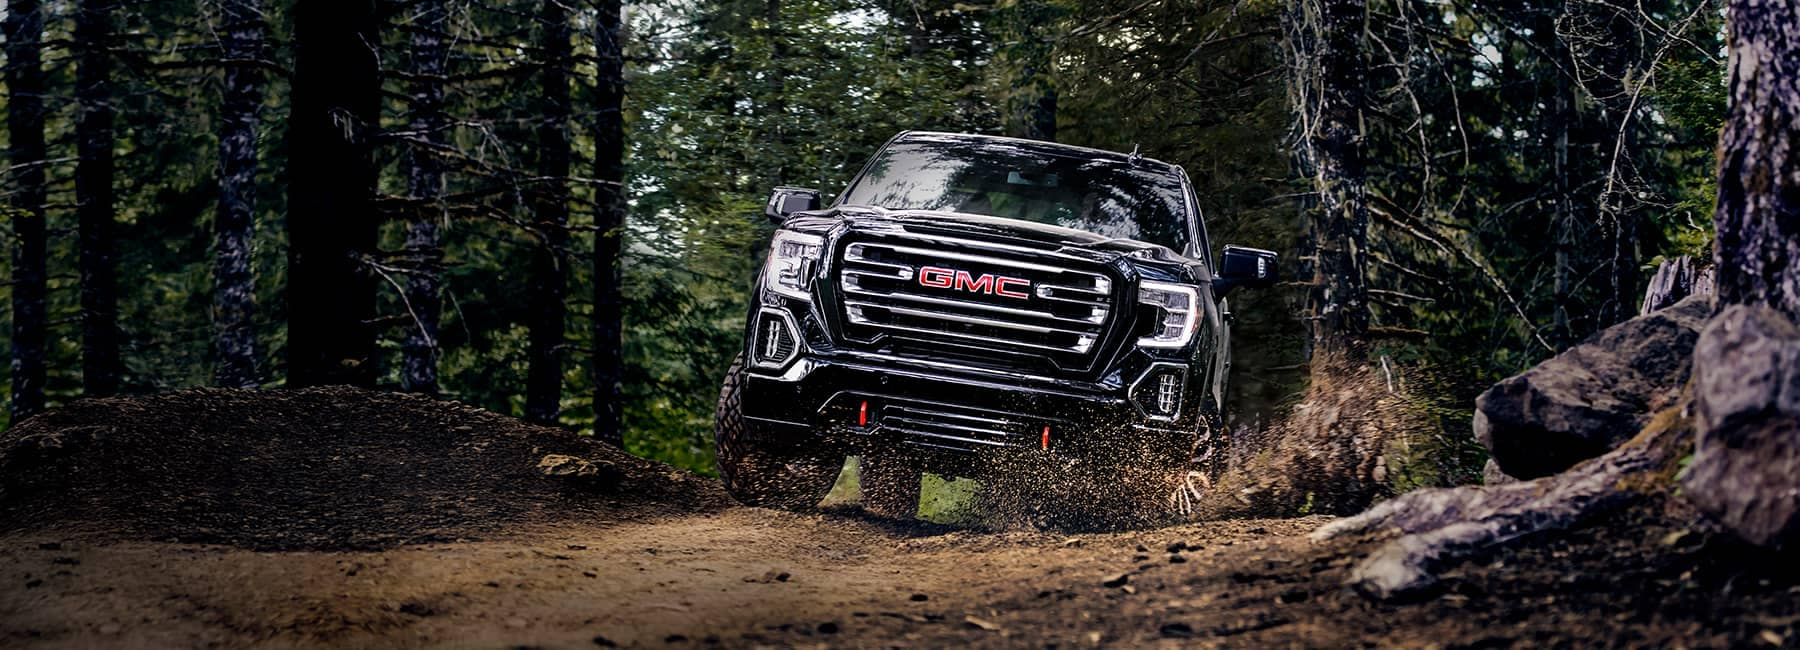 2020 GMC Sierra 1500 in the Woods